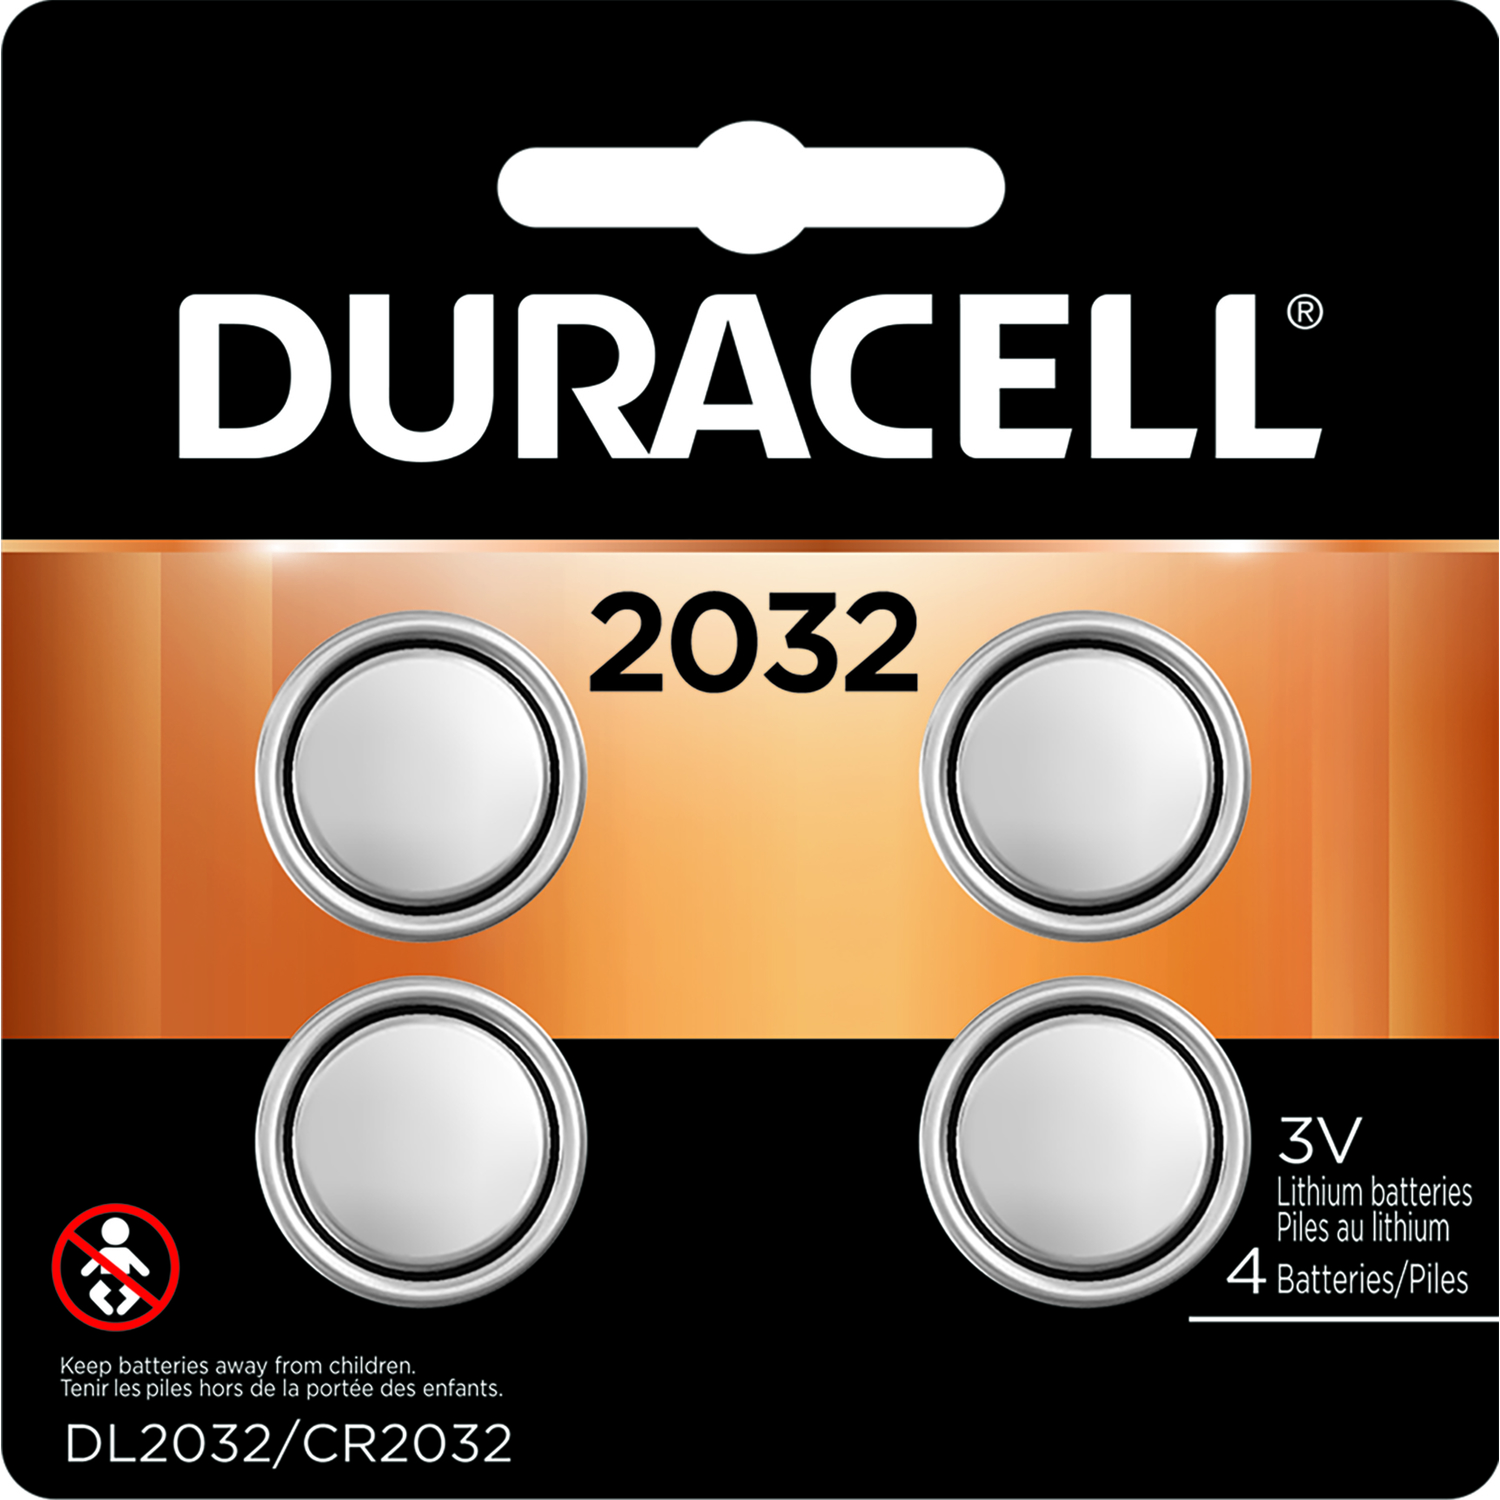 Duracell  2032  Security and Electronic Battery  4 pk Lithium